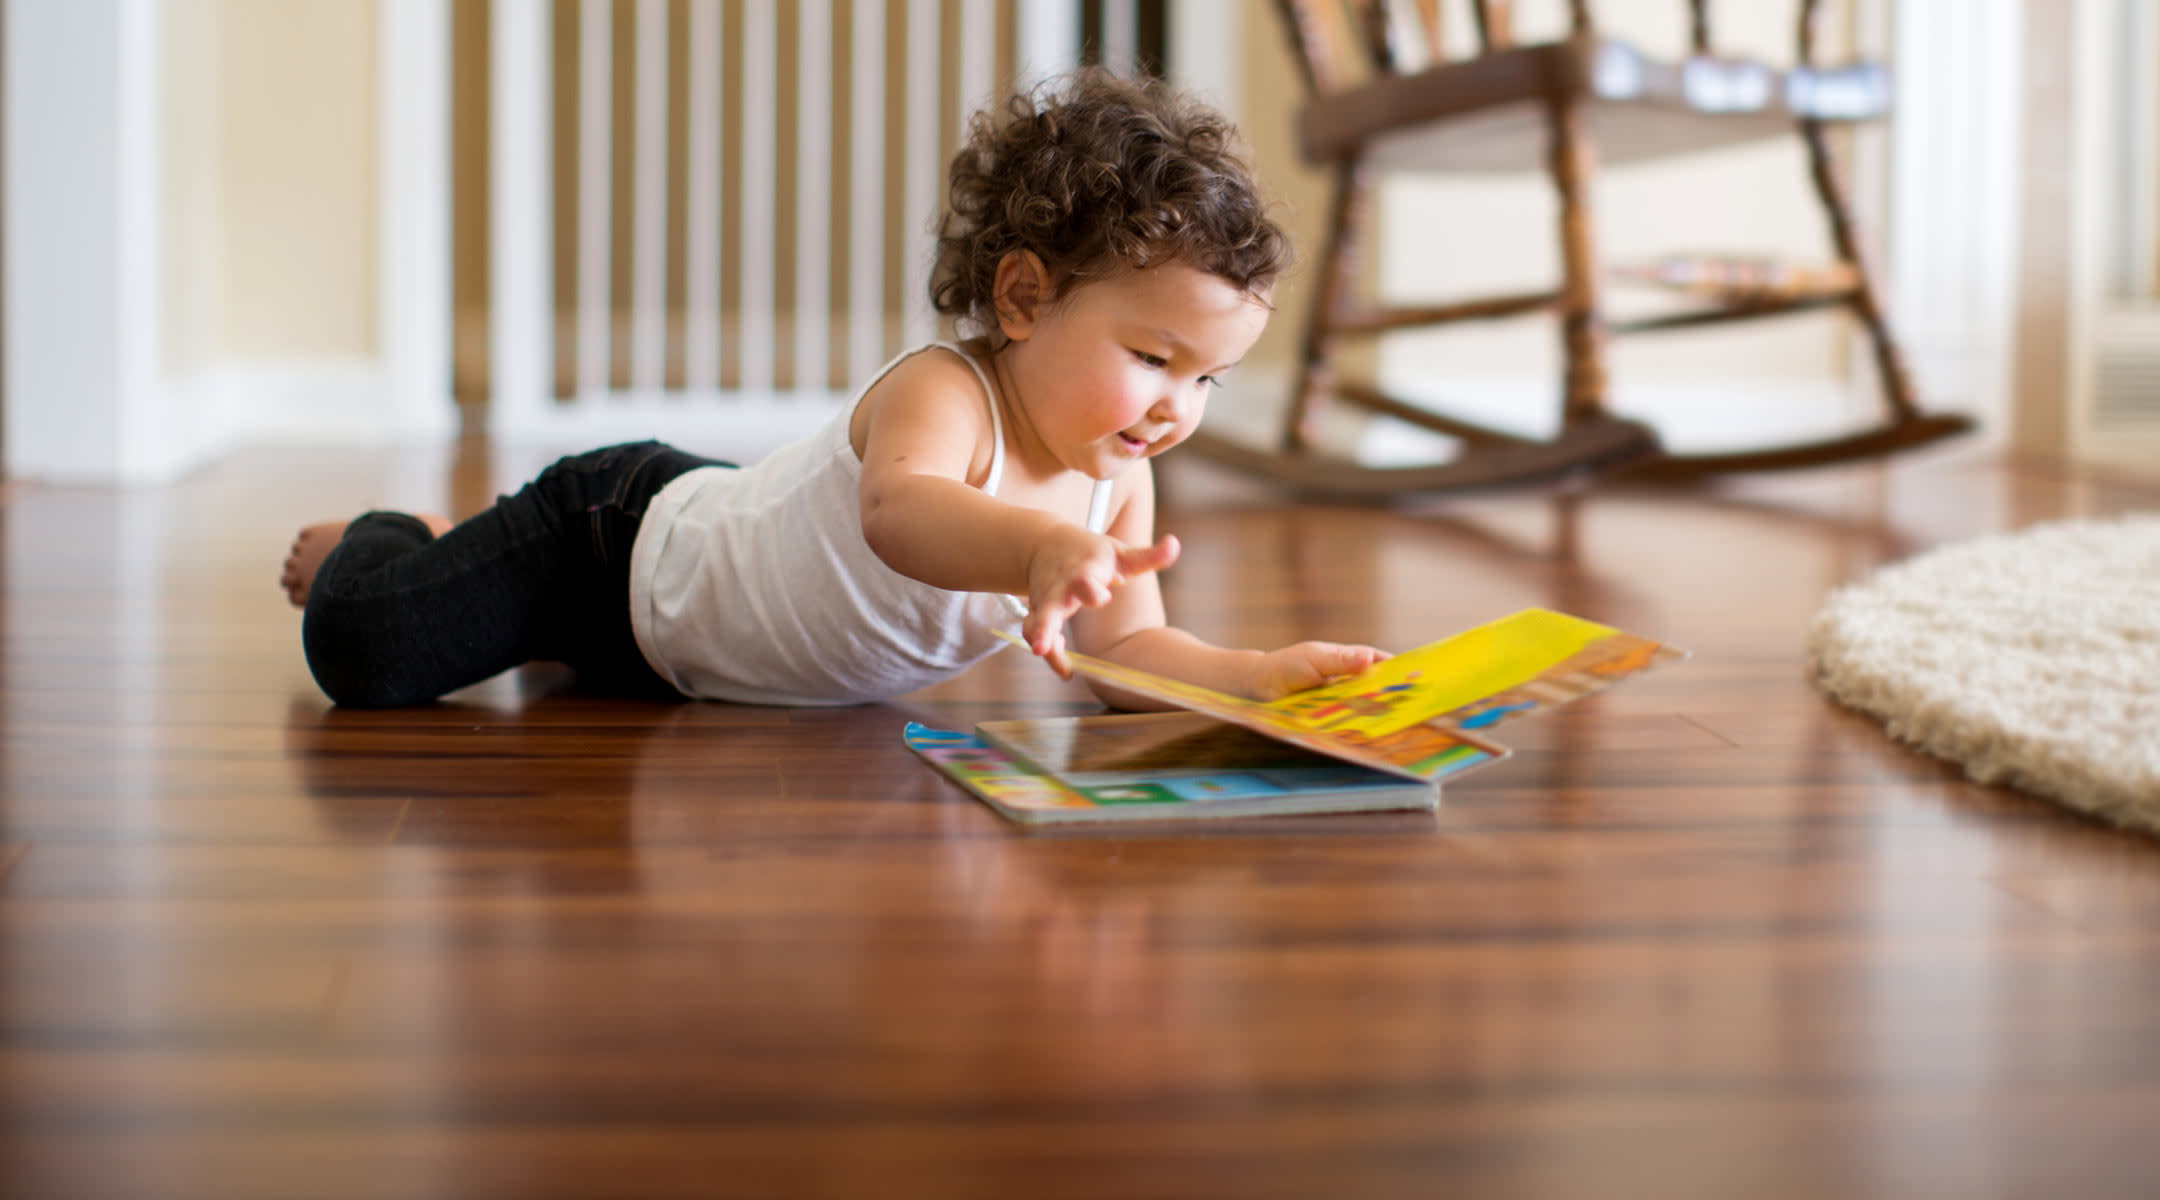 toddler reading potty training book